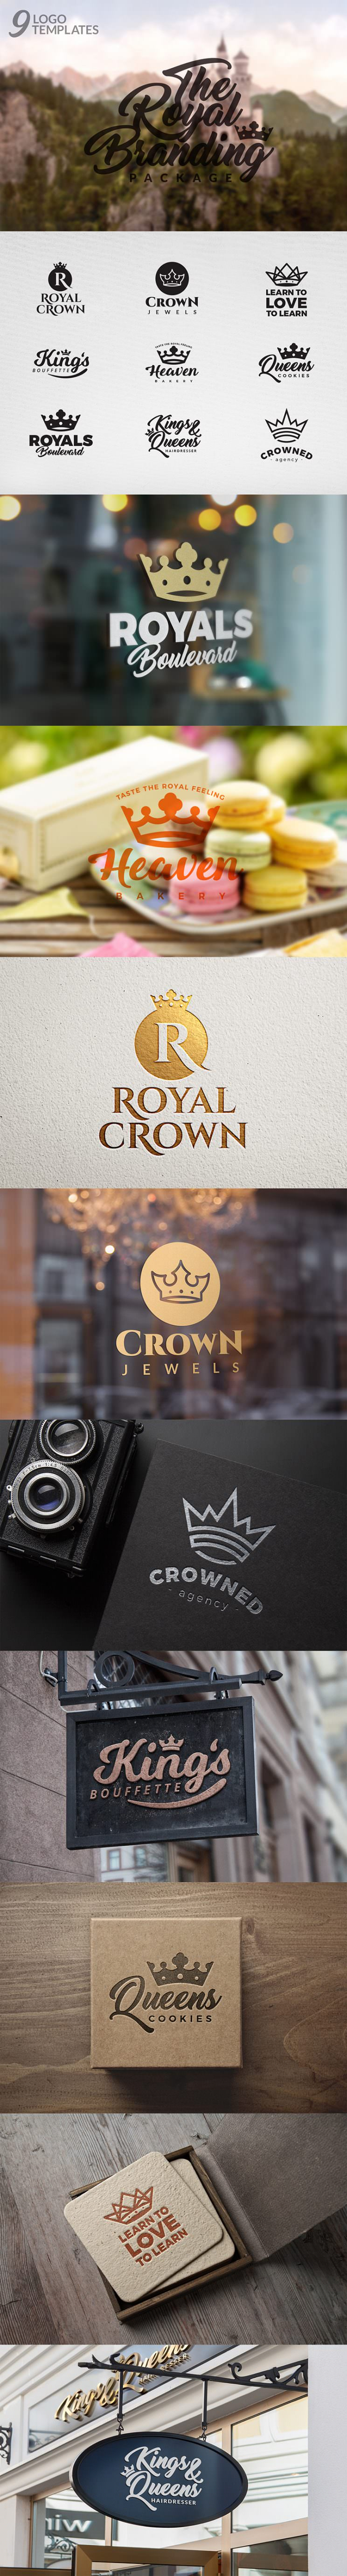 the-royal-branding-package-logos